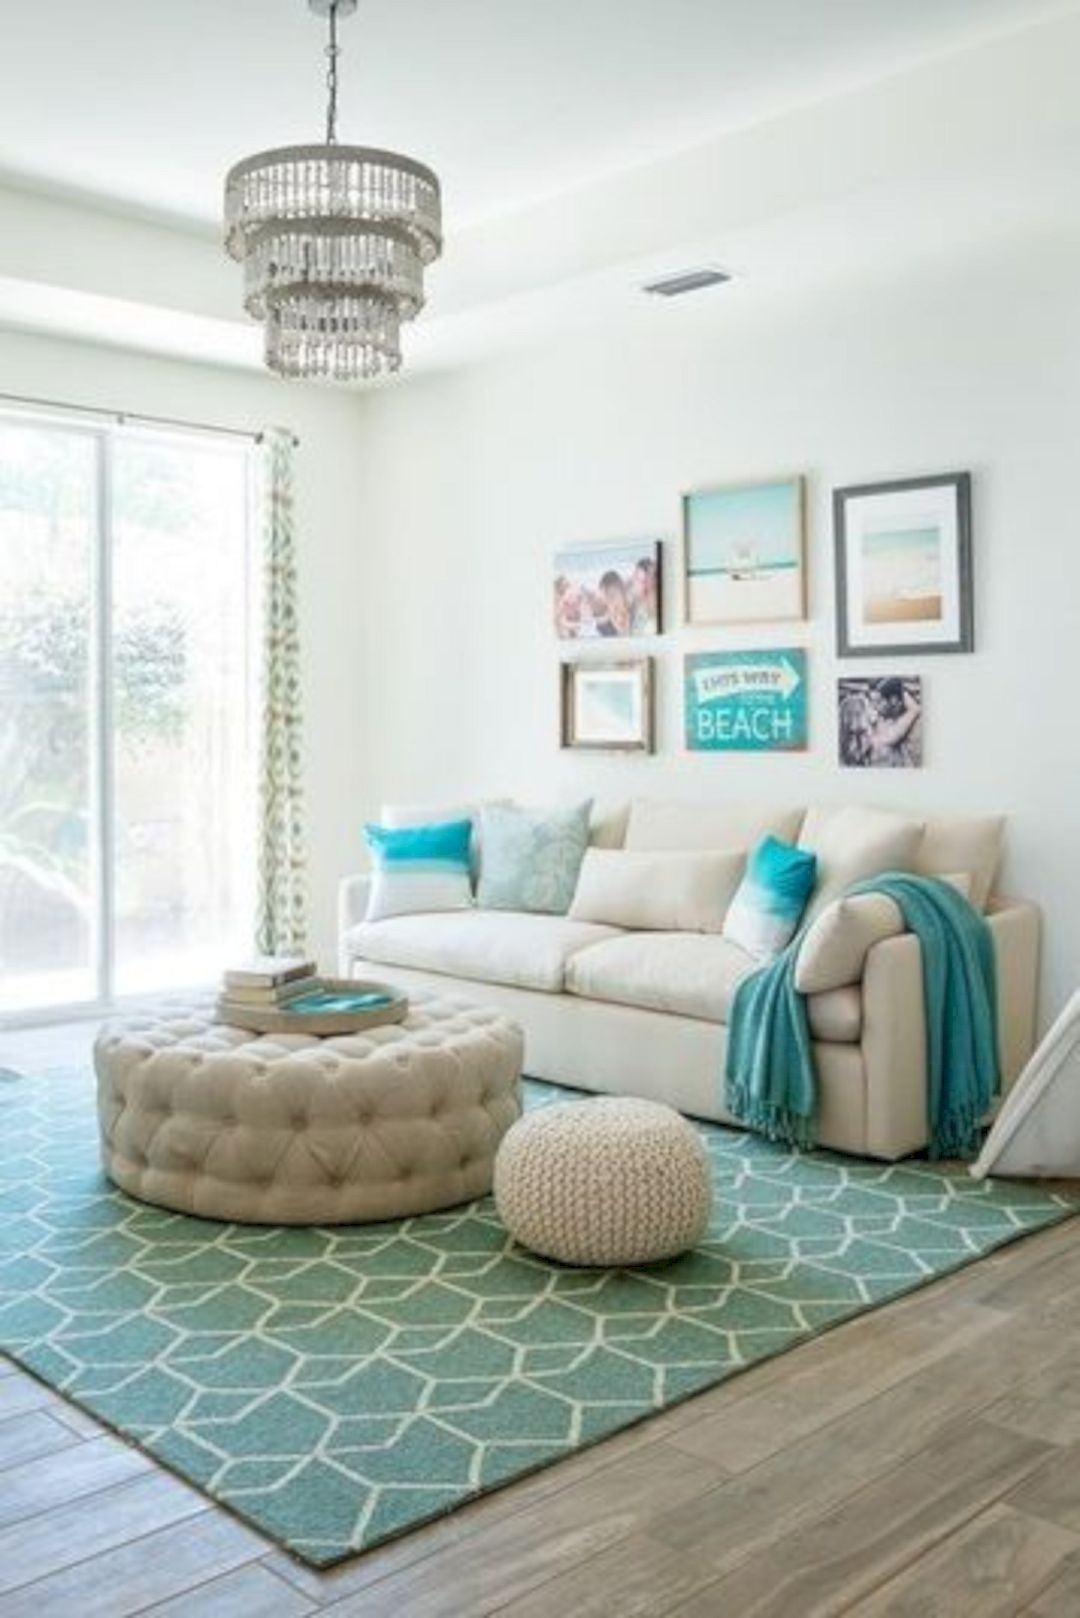 15 Impressive Wall Decorating Ideas For Your Living Room Beach